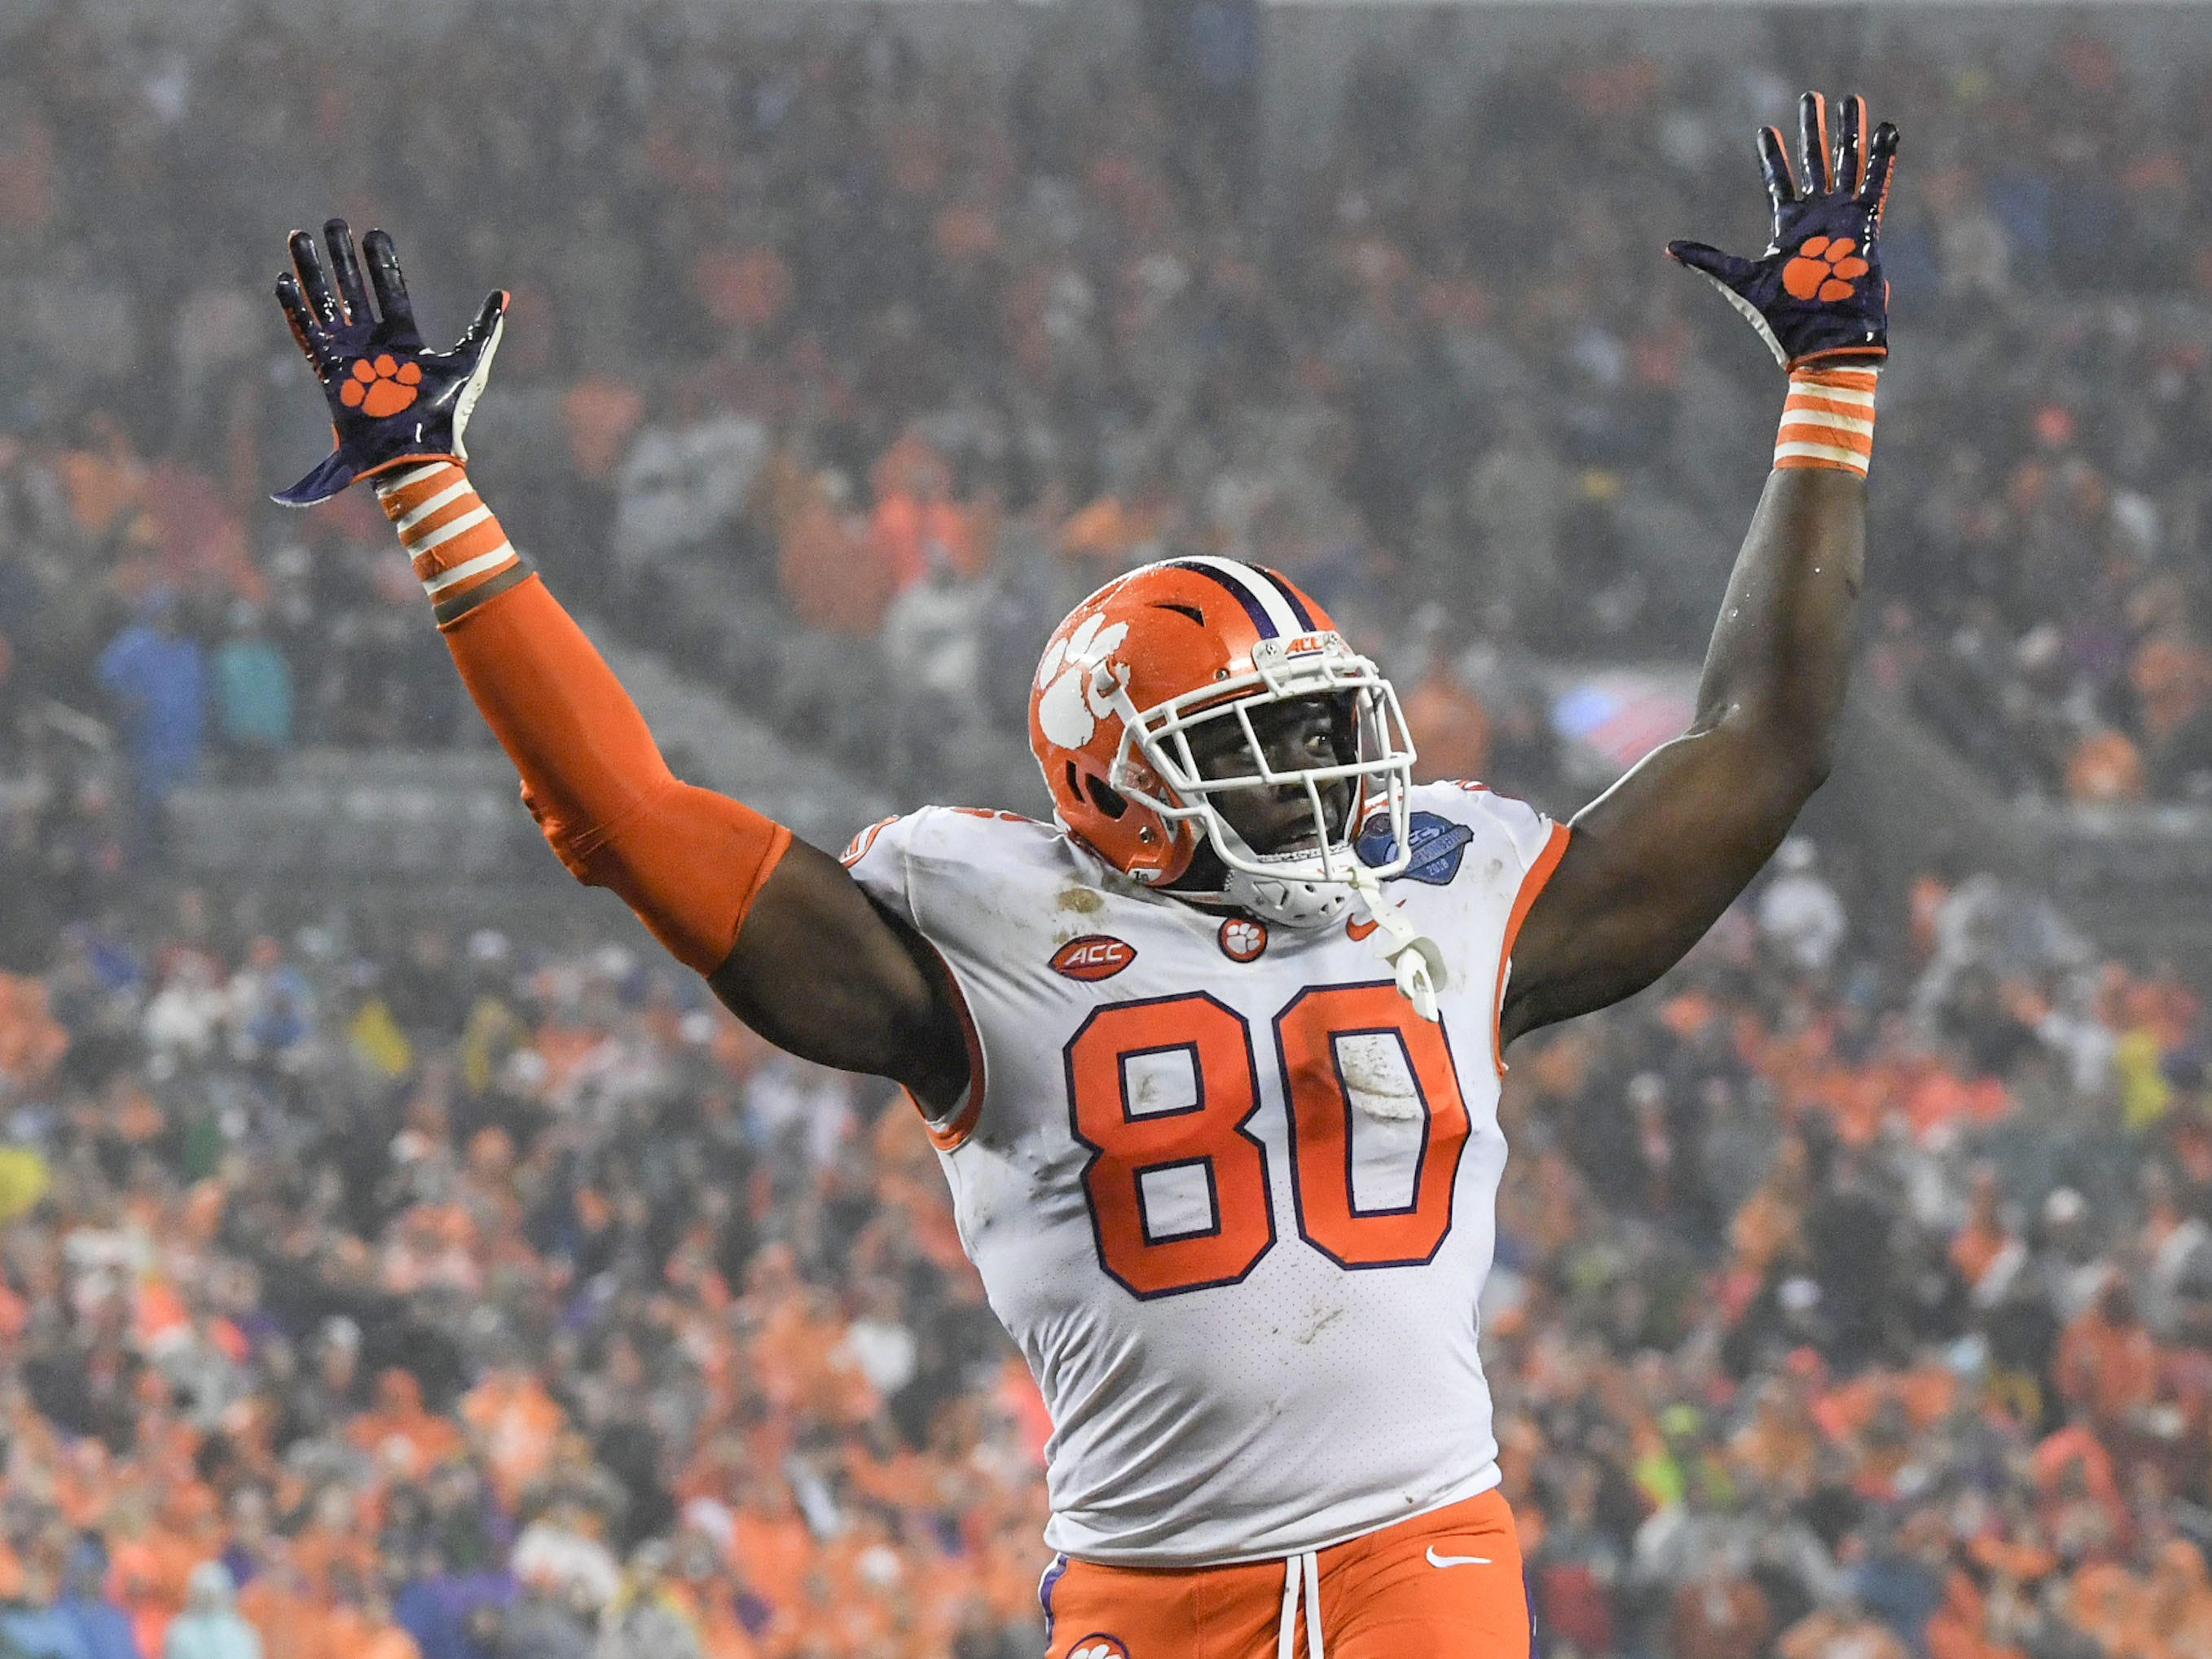 Clemson tight end Milan Richard (80) raises his arms during the fourth quarter of the Dr. Pepper ACC football championship at Bank of America Stadium in Charlotte, N.C. on Saturday, December 1, 2018.